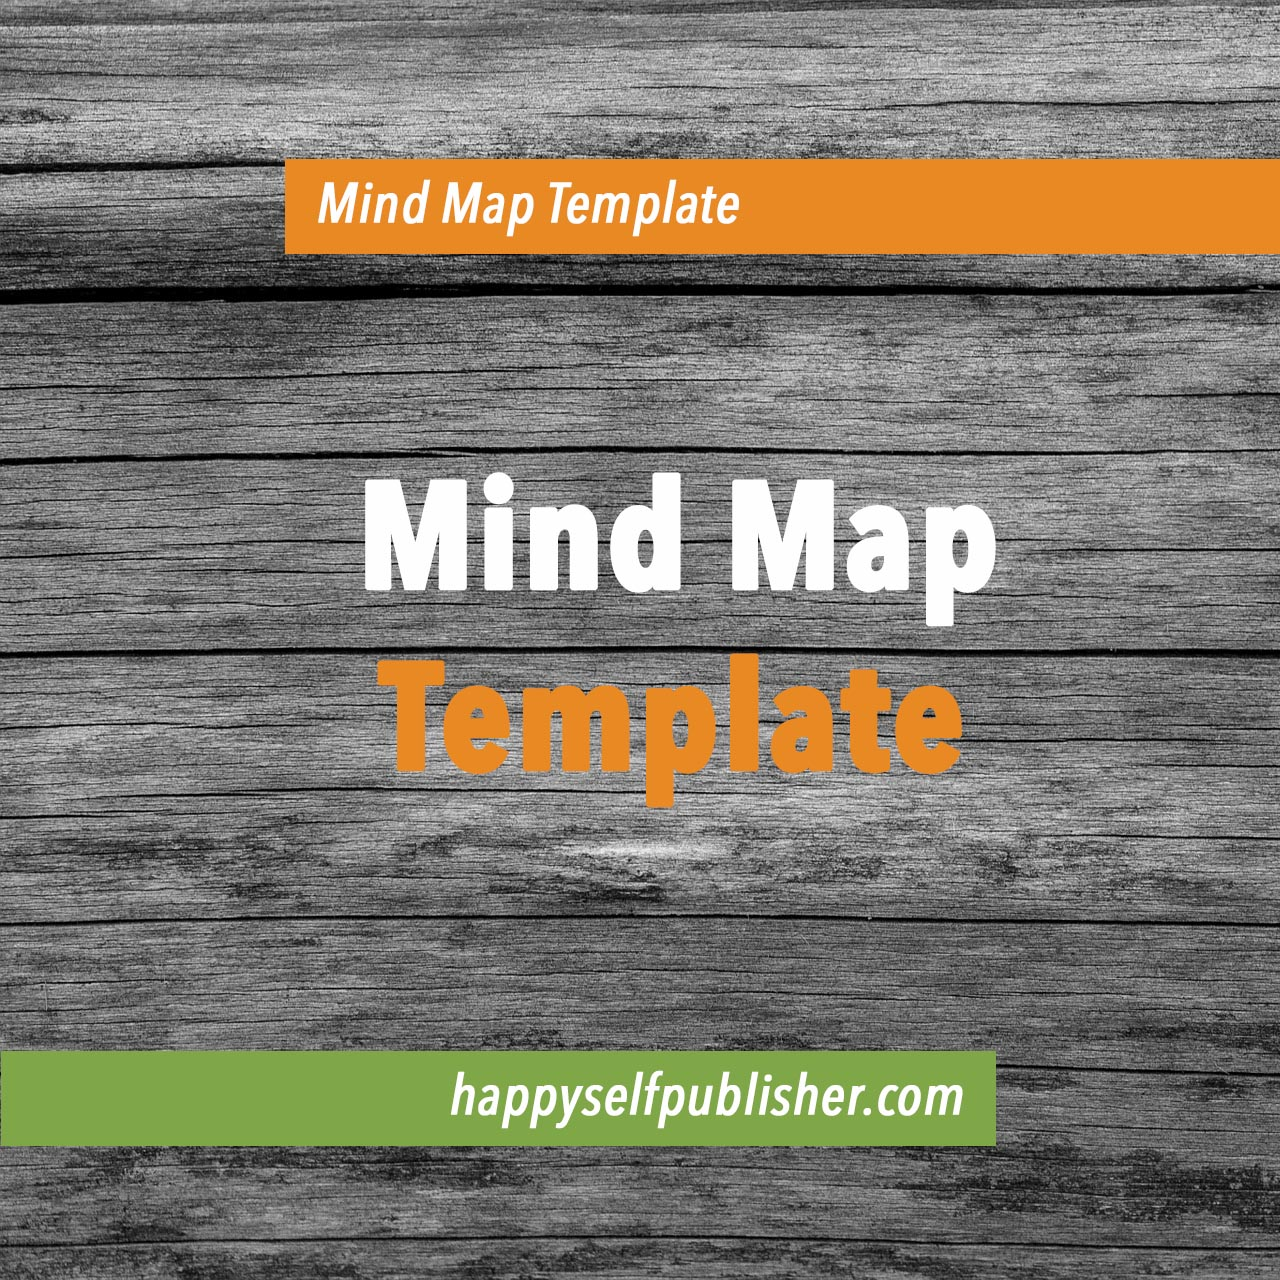 Mind map template for writing a book